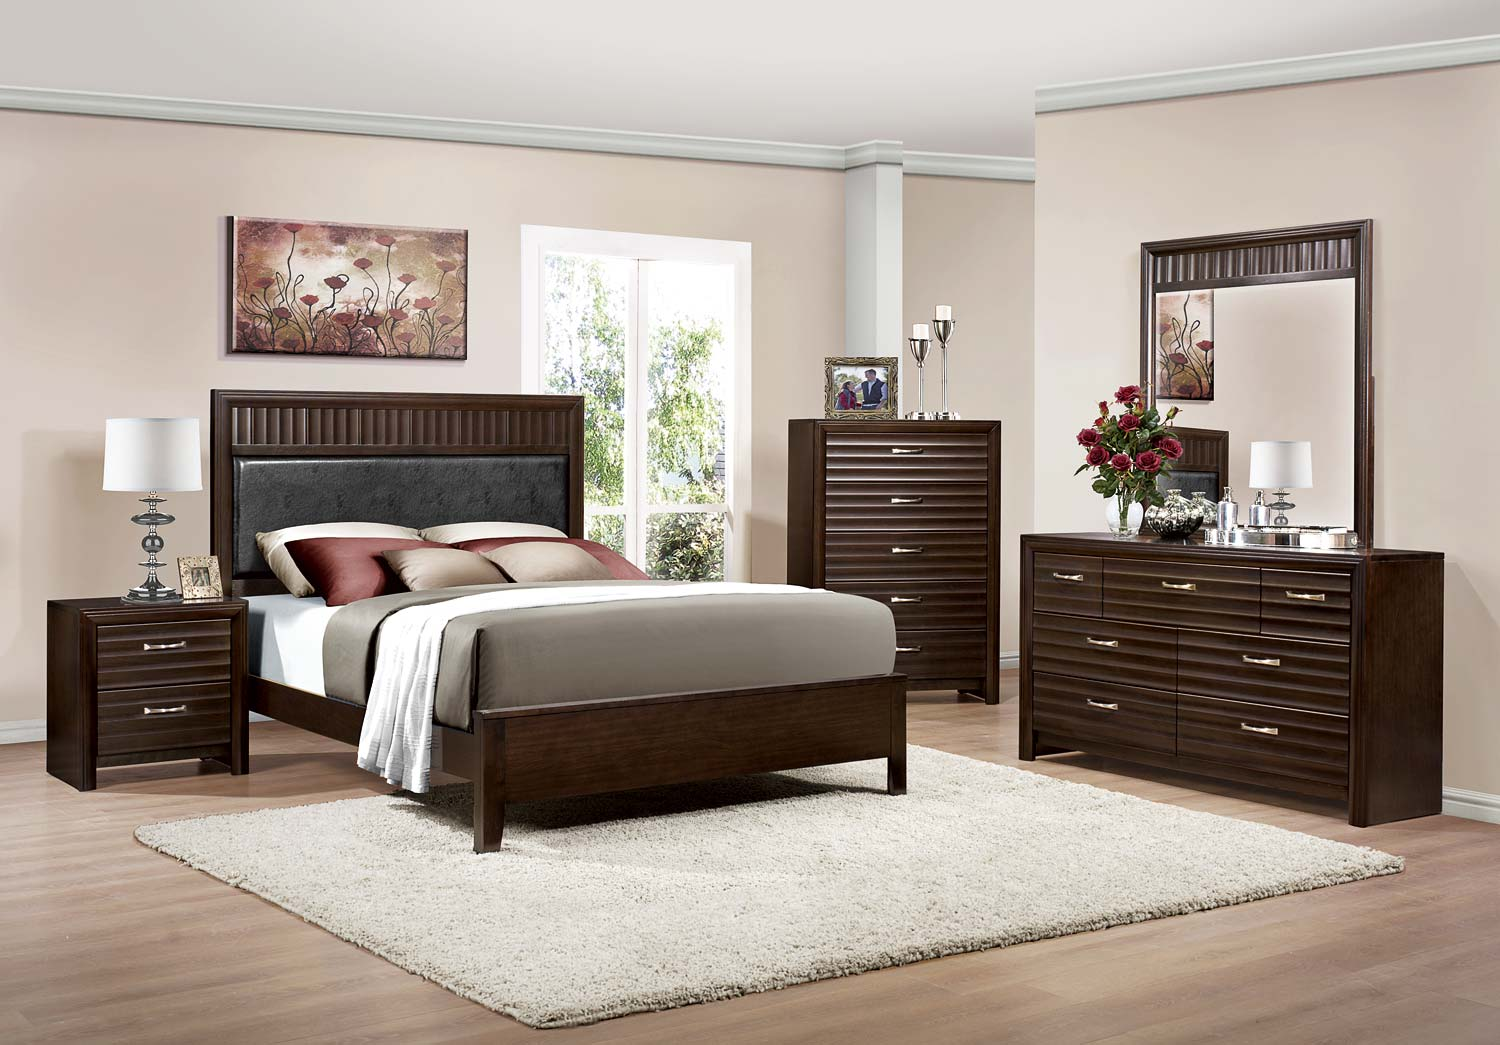 Homelegance Hilton Bedroom Set - Espresso